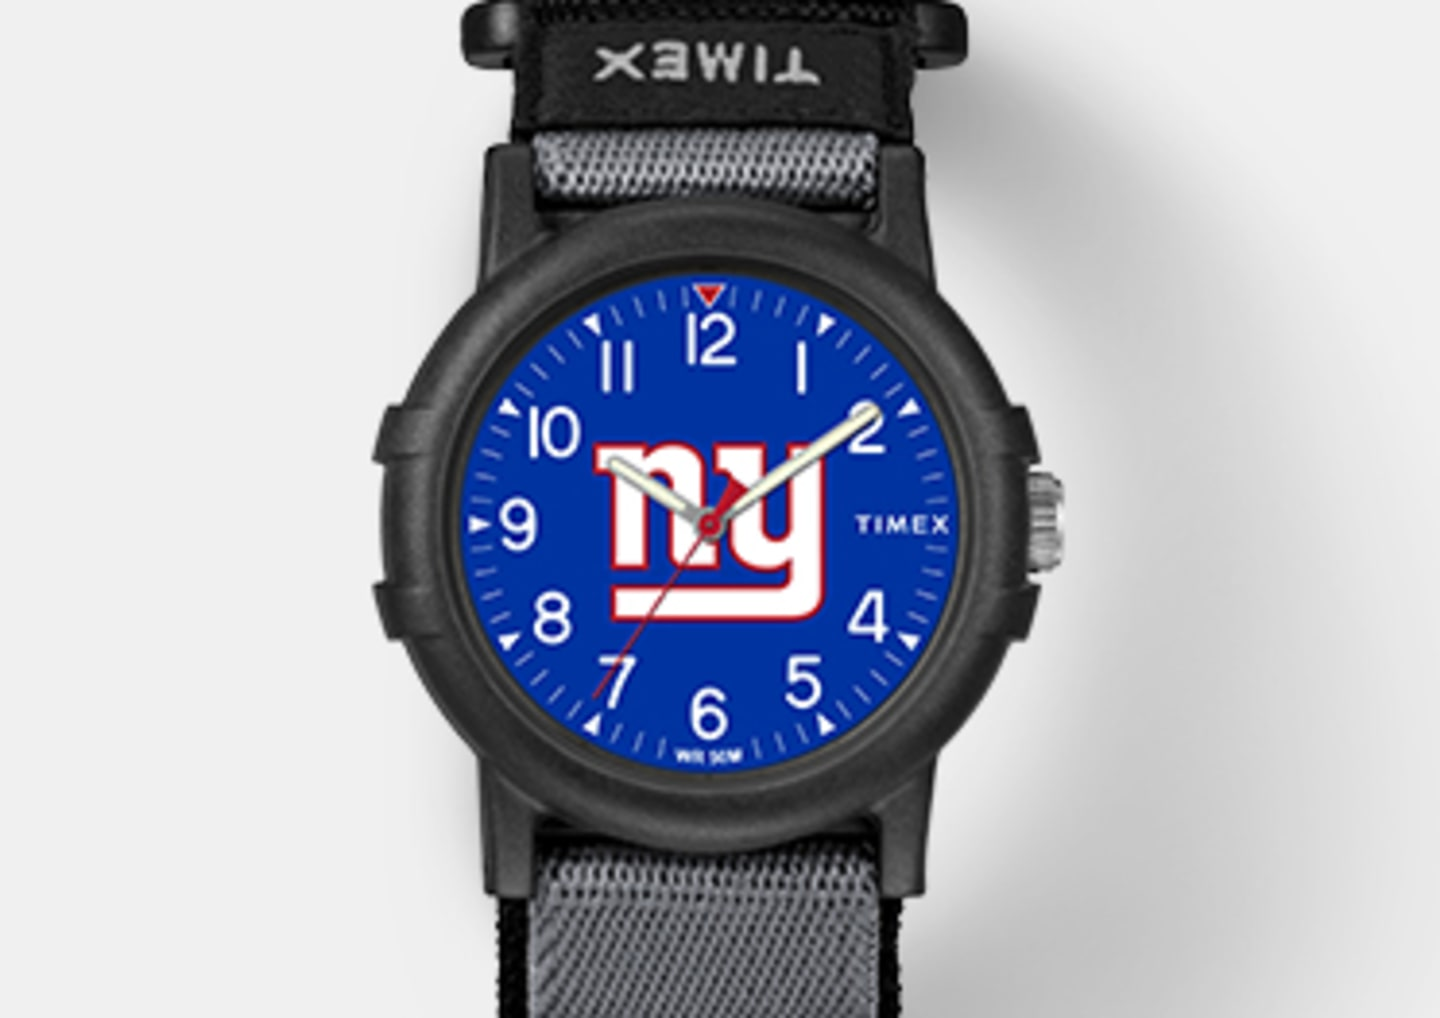 Black Youth Giants Watch With Blue Center And Giants Logo In Center